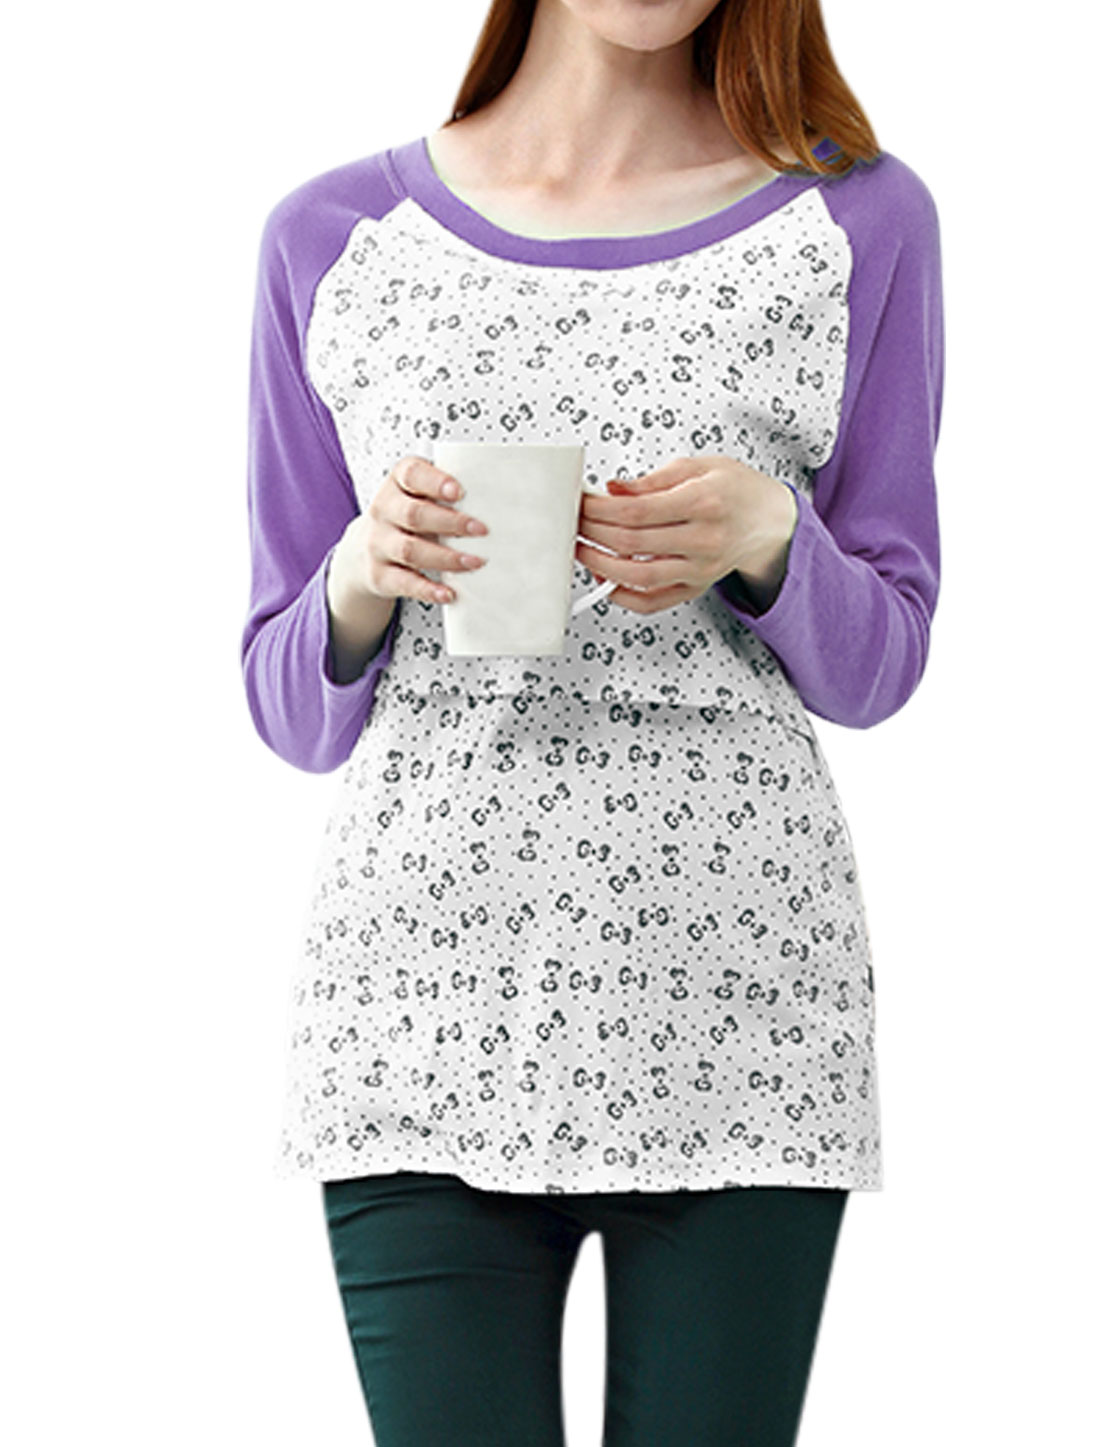 XK166 Motherhood Contrast Raglan Sleeves Bowknot Pattern Leisure T-Shirt Light Purple White XXL/M (US 10)